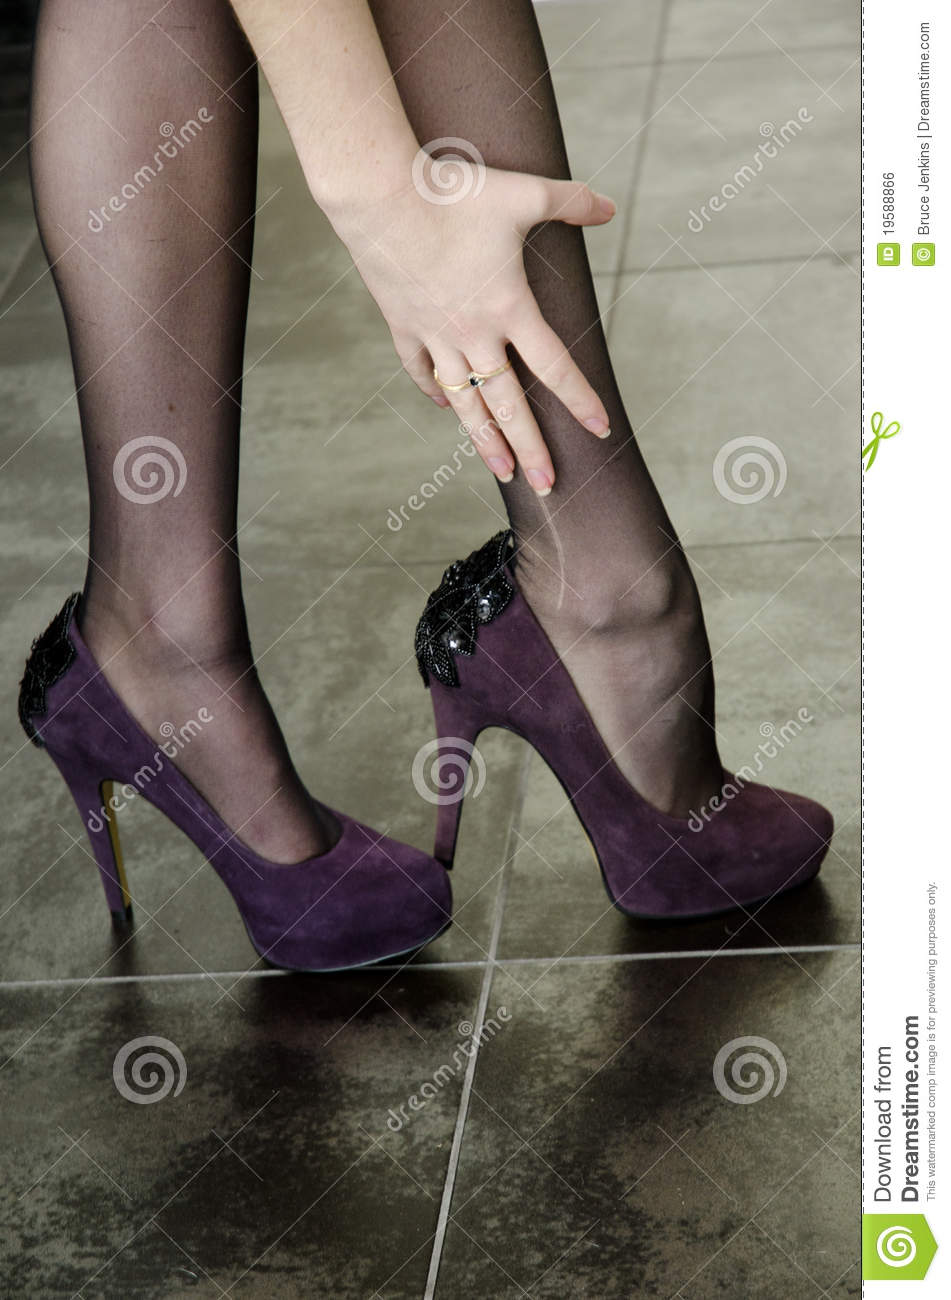 High Heels And Laddered Stockings Royalty Free Stock Image - Image